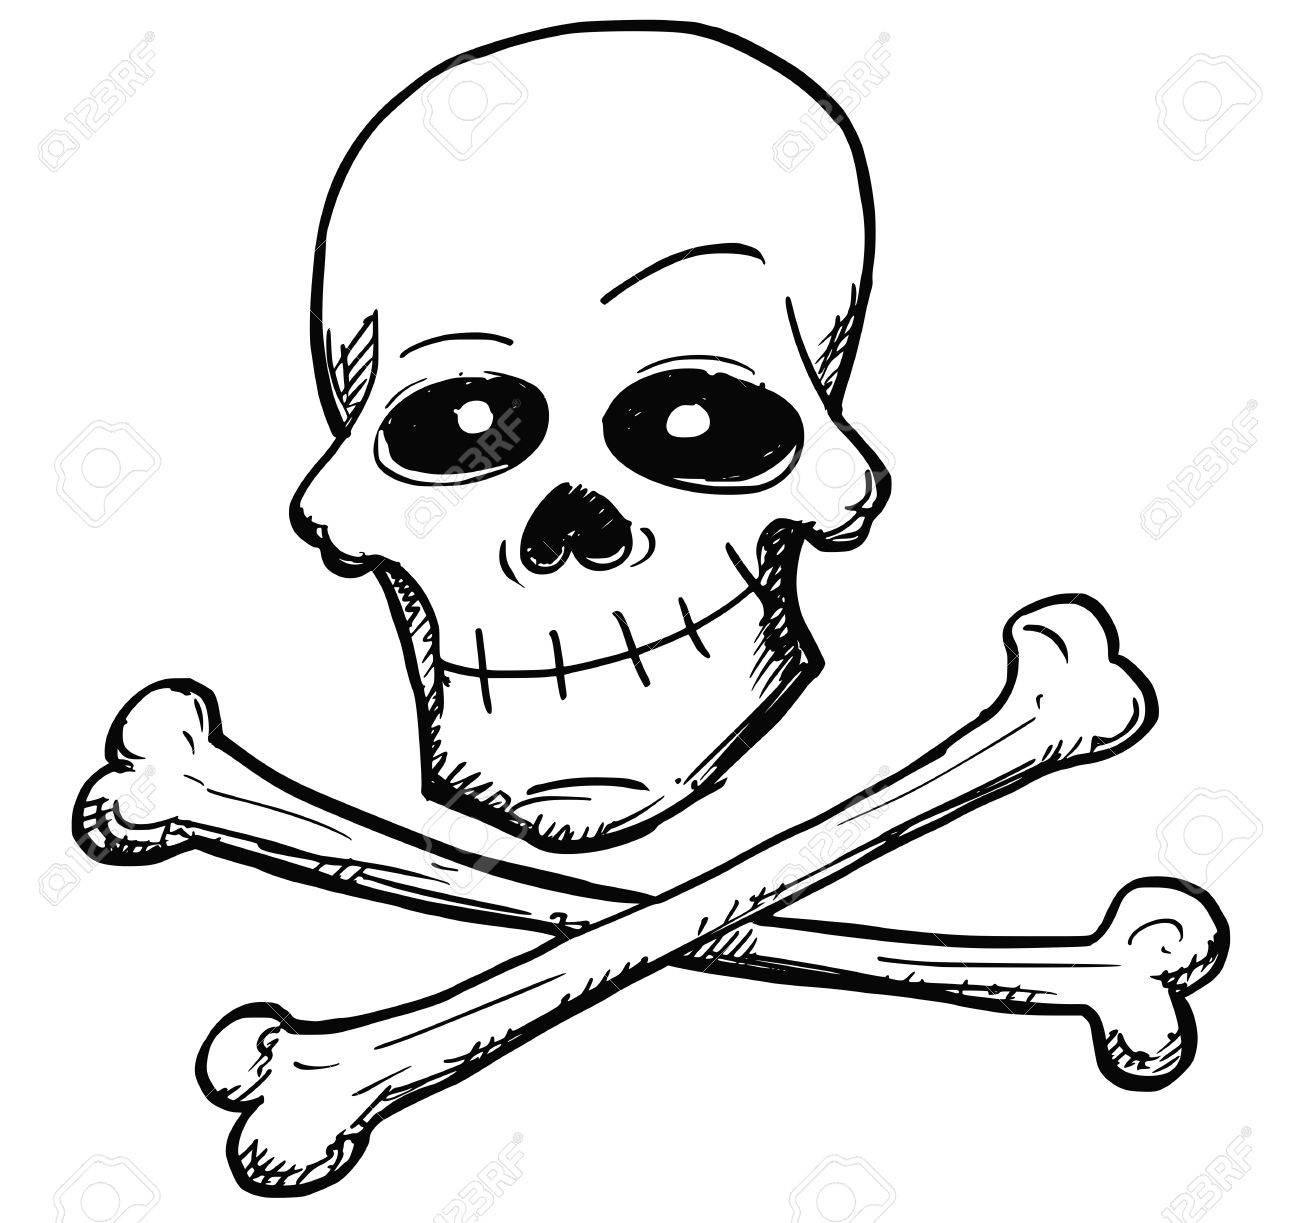 1300x1223 Vector Cartoon Of Danger Poison Or Pirate Sign Of Human Skull